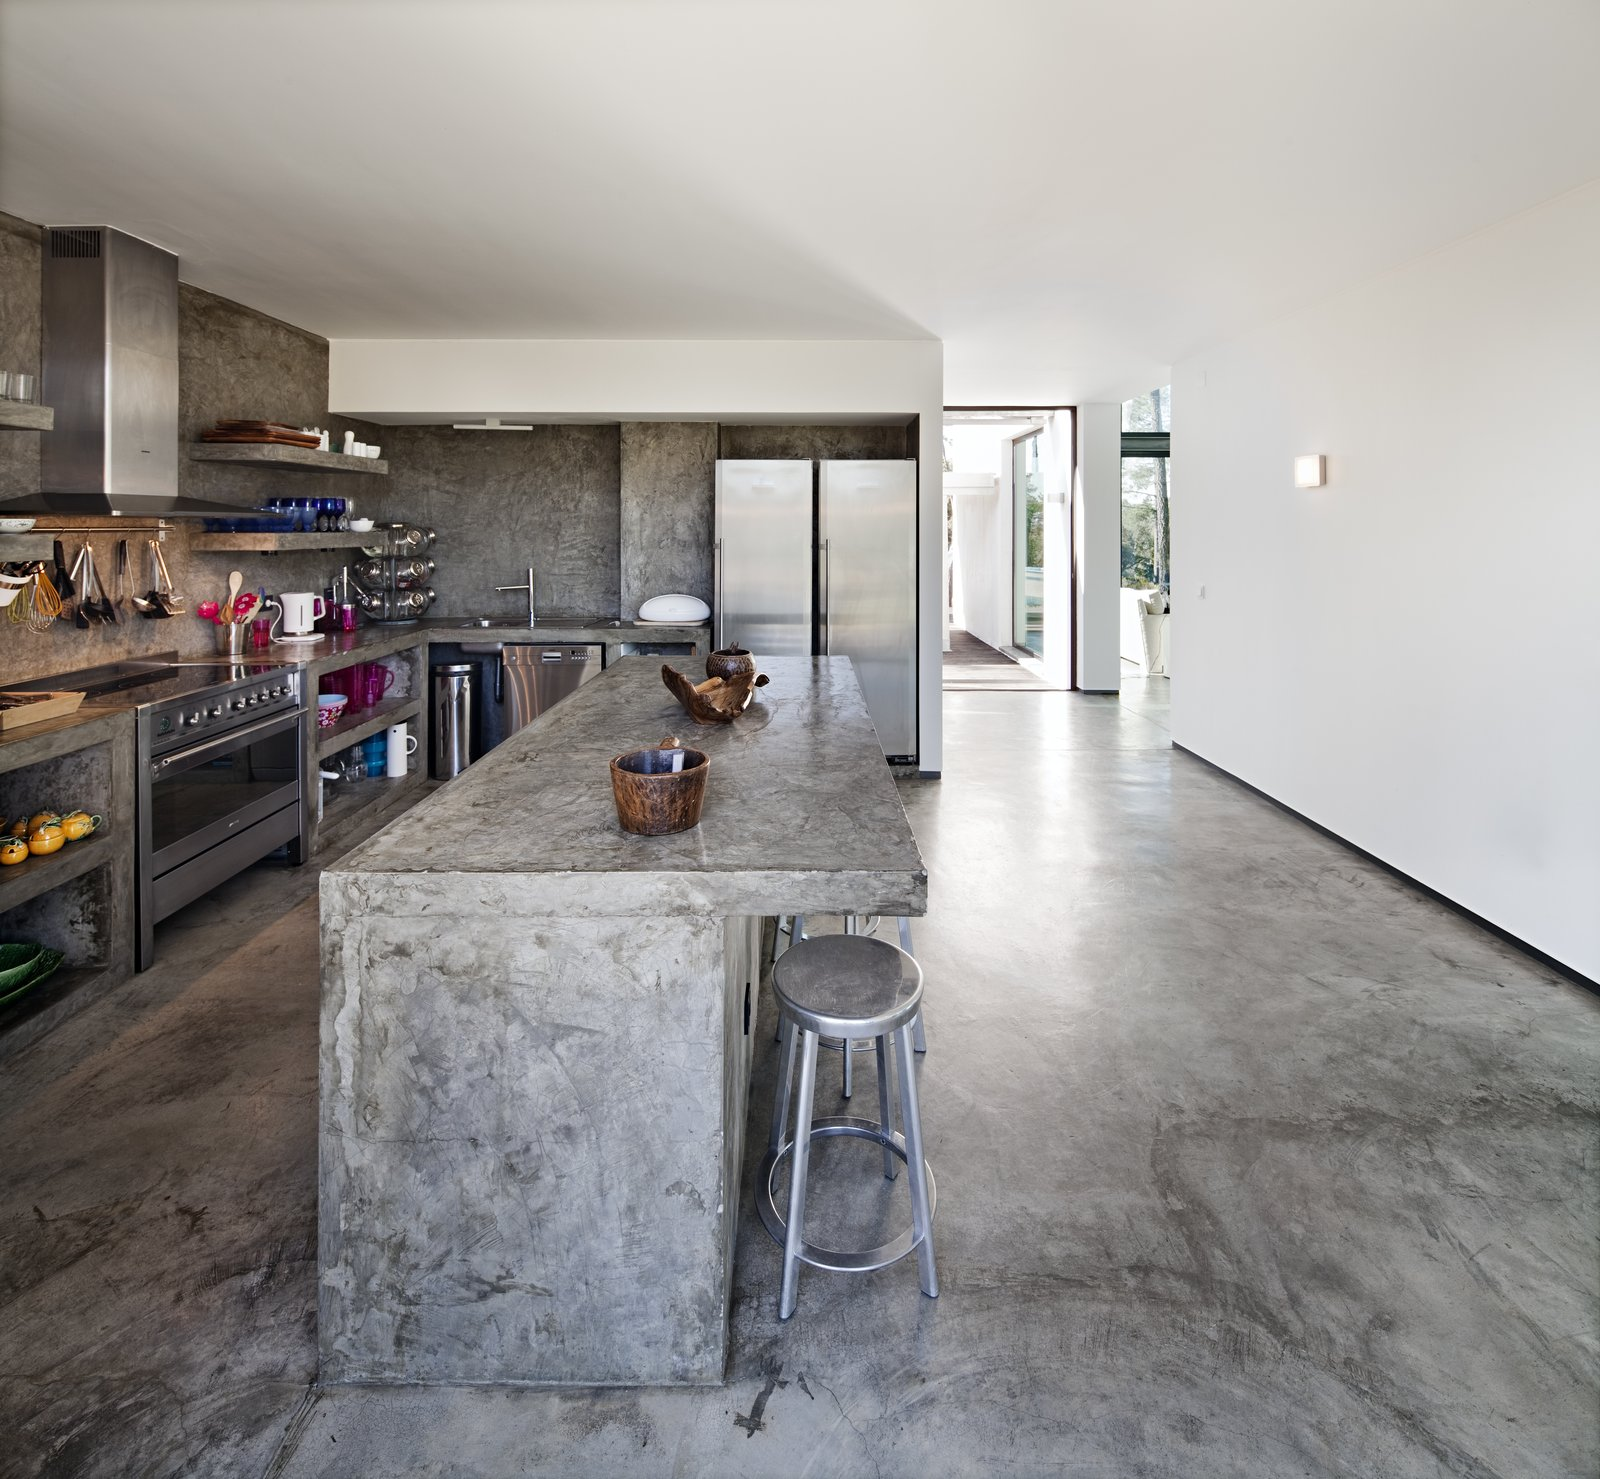 Kitchen, Concrete, Dishwasher, Range Hood, Wall Oven, Refrigerator, Drop In, Concrete, Open, Wall, Cooktops, Ceiling, and Concrete  Best Kitchen Concrete Cooktops Ceiling Photos from Escape to a Light-Filled, Beach-Meets-Forest Retreat in Portugal